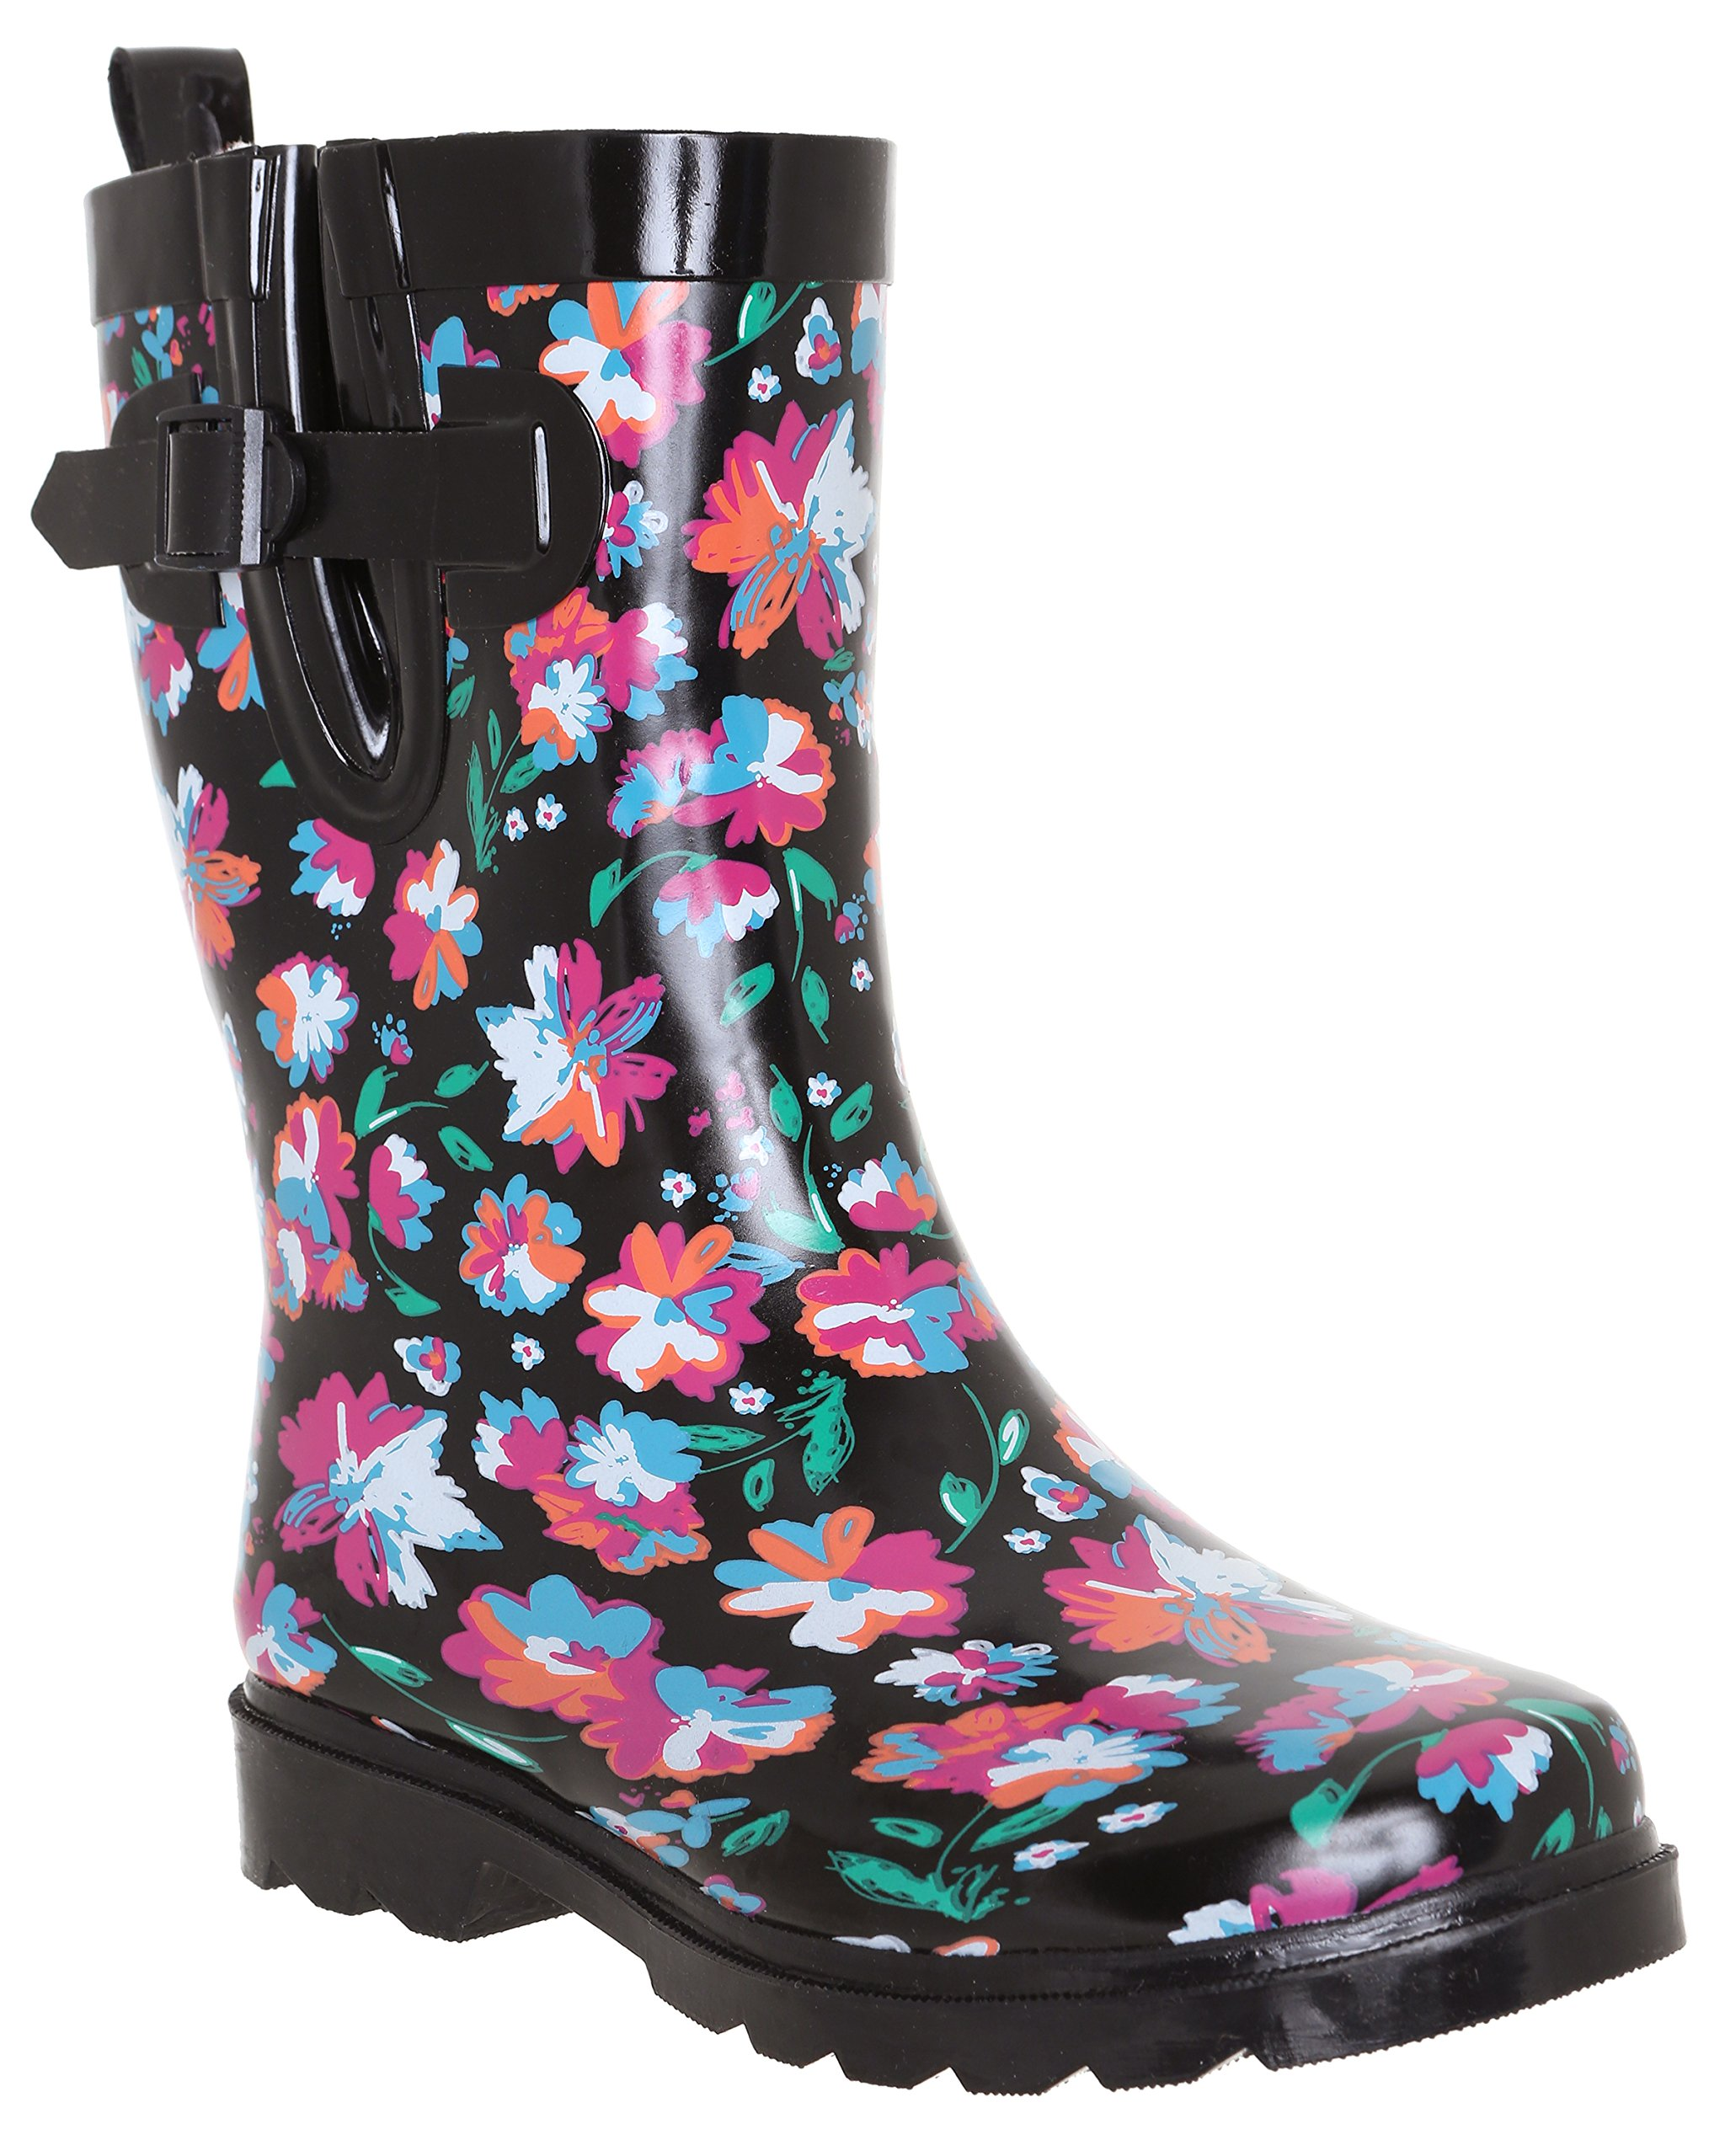 Capelli New York Ladies Bright Floral Printed Mid- Calf Rain Boot Black Combo 8